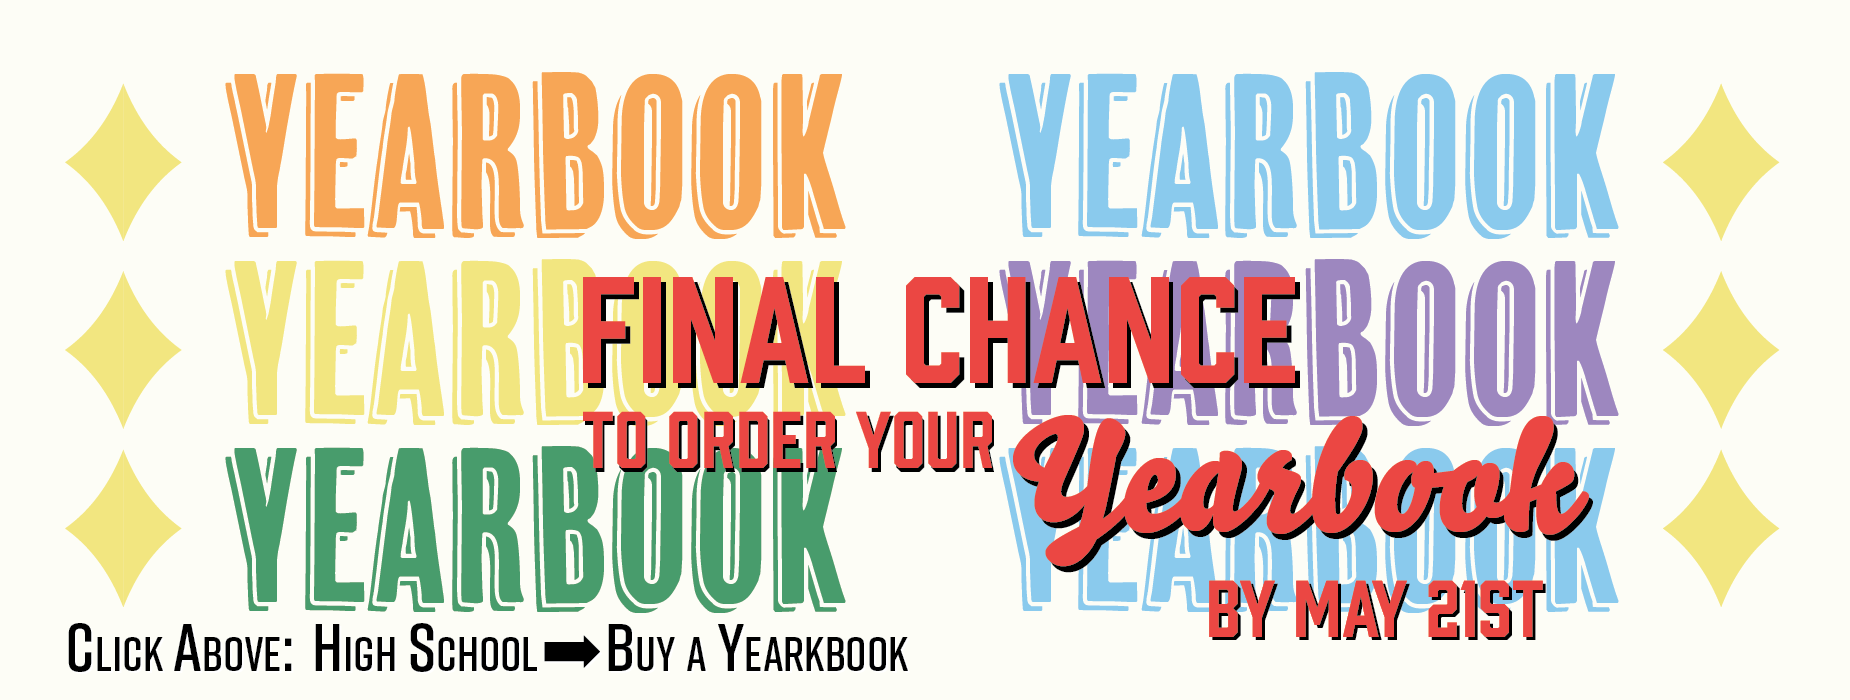 Yearbook Deadline May 21st